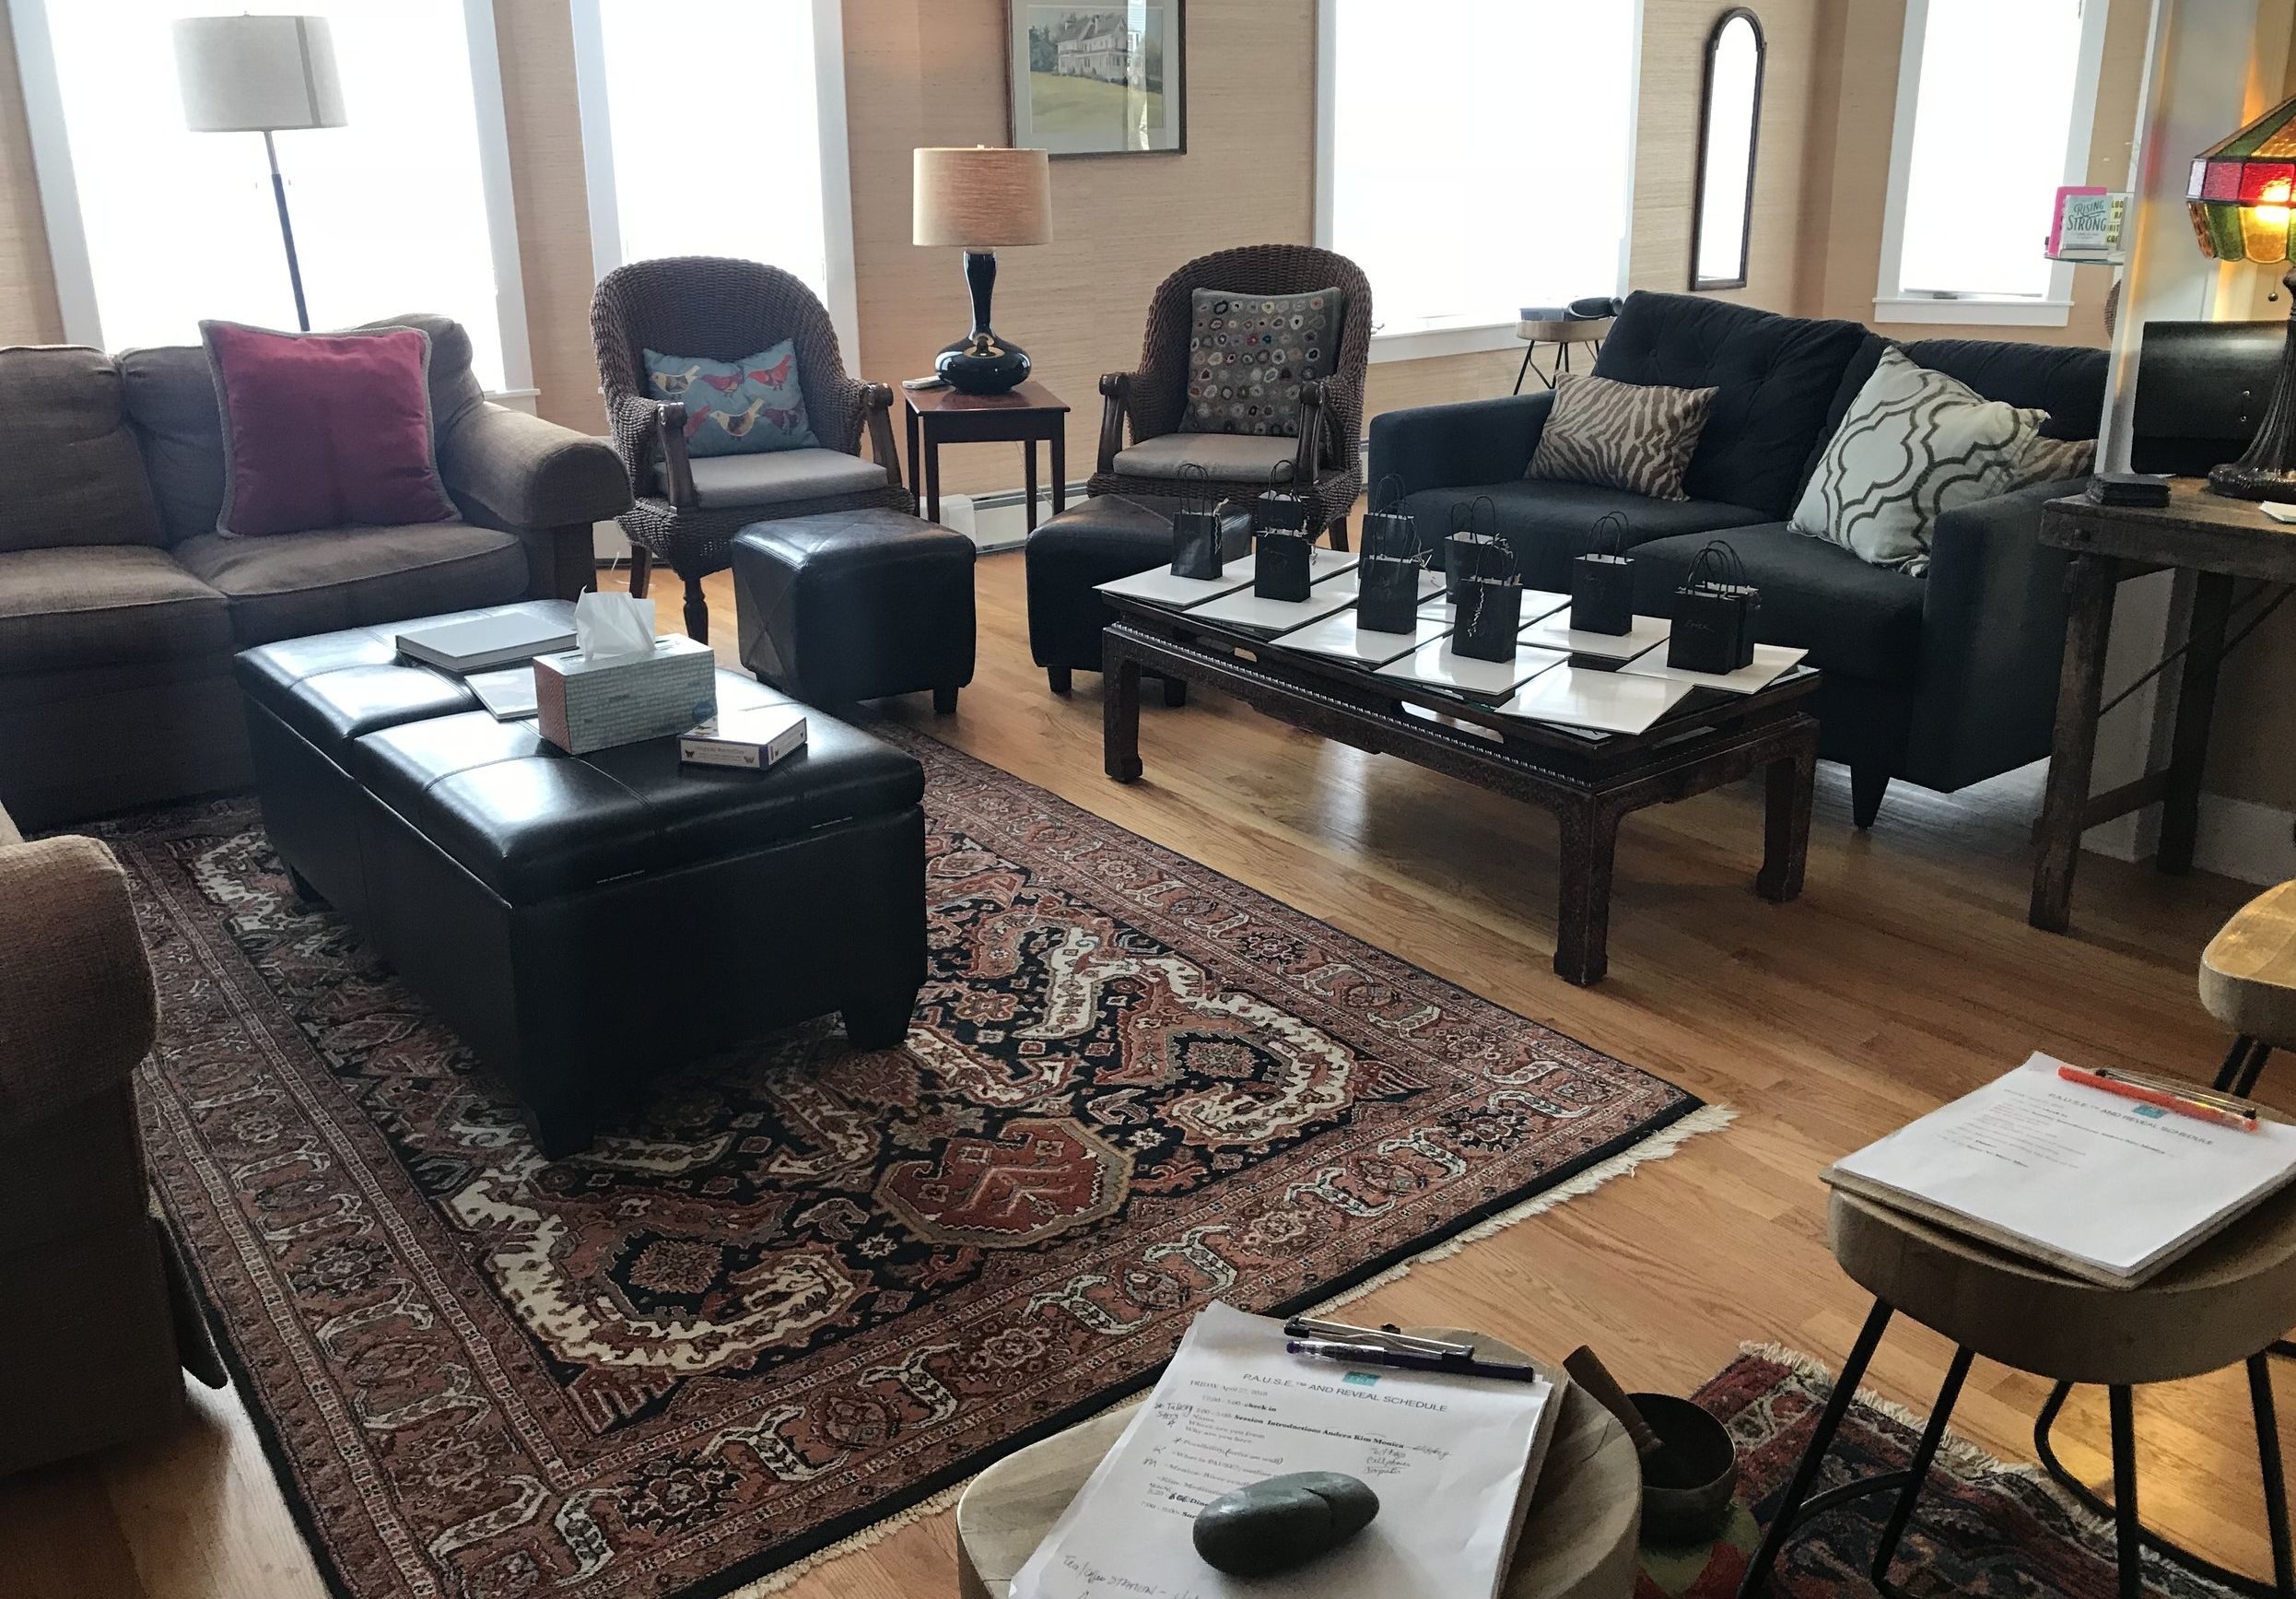 We configured our seating area for 10 participants and 3 guides at the front of the room who delivered the retreat material. We have plenty of stools and extra seating to offer you should you need them.